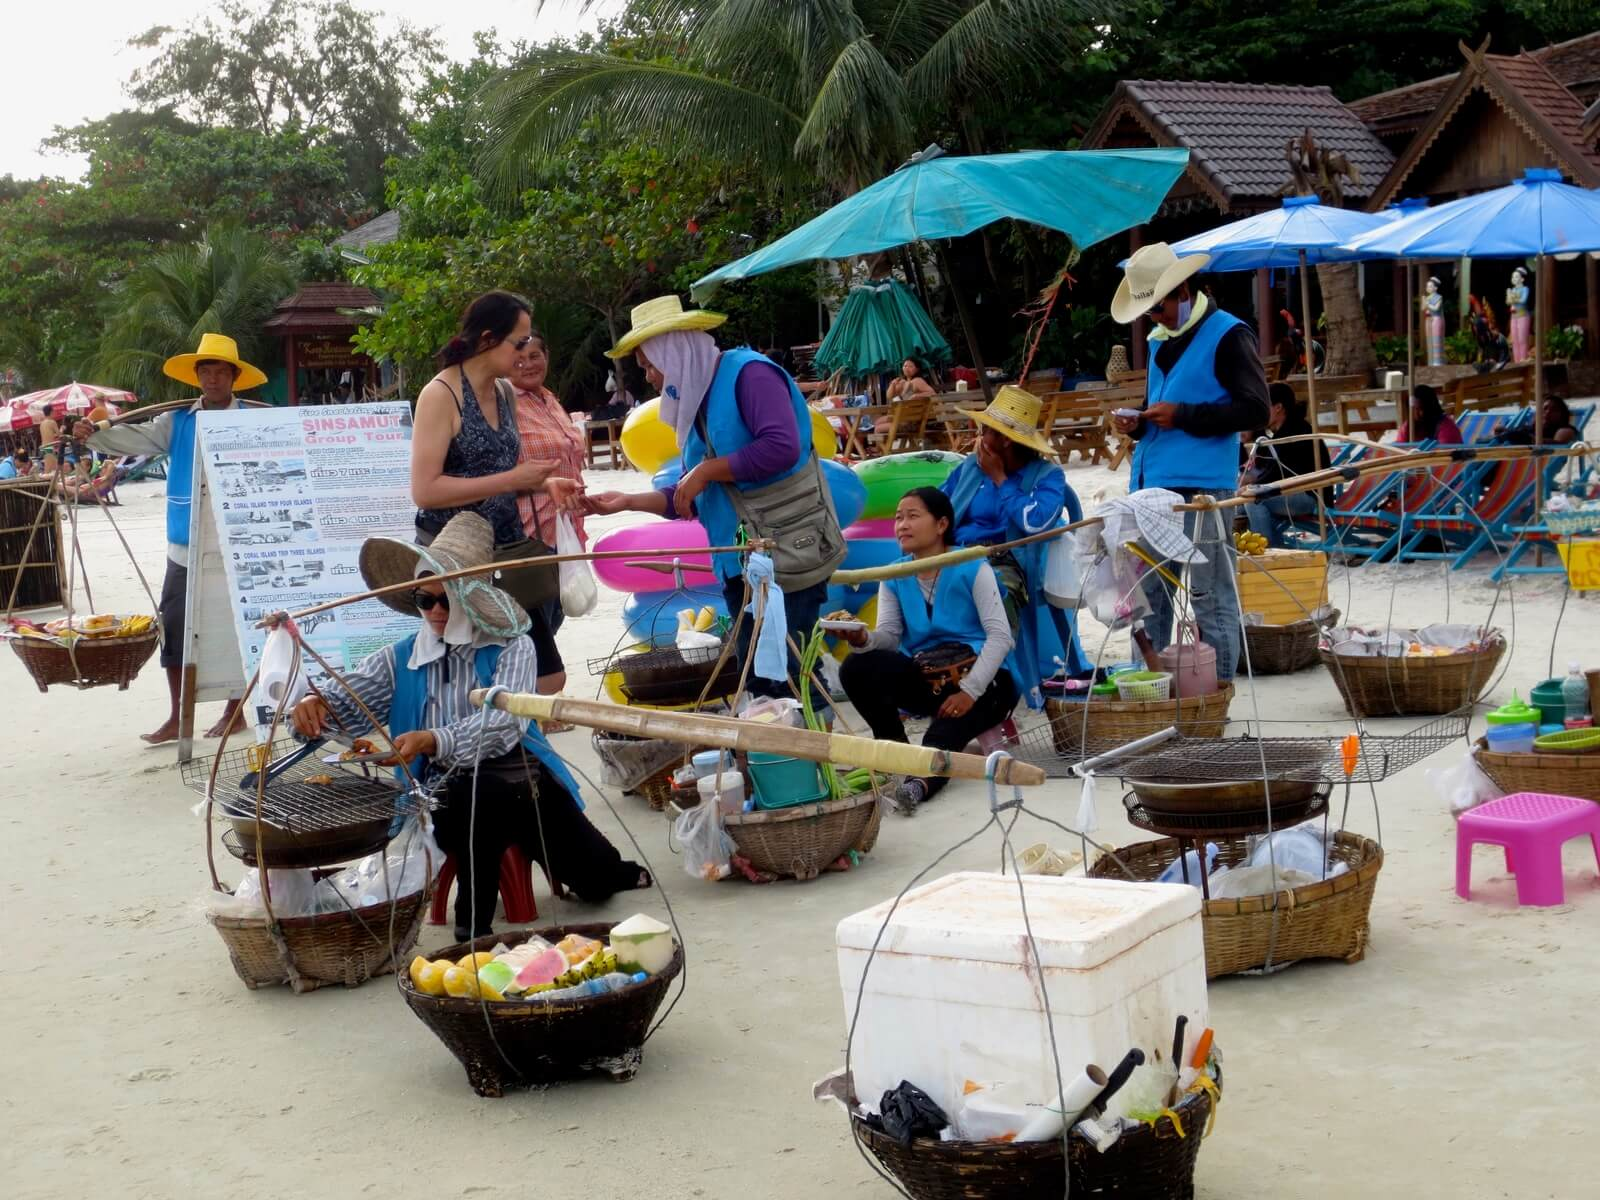 Vendors on the beaches of Koh Samet island, Thailand